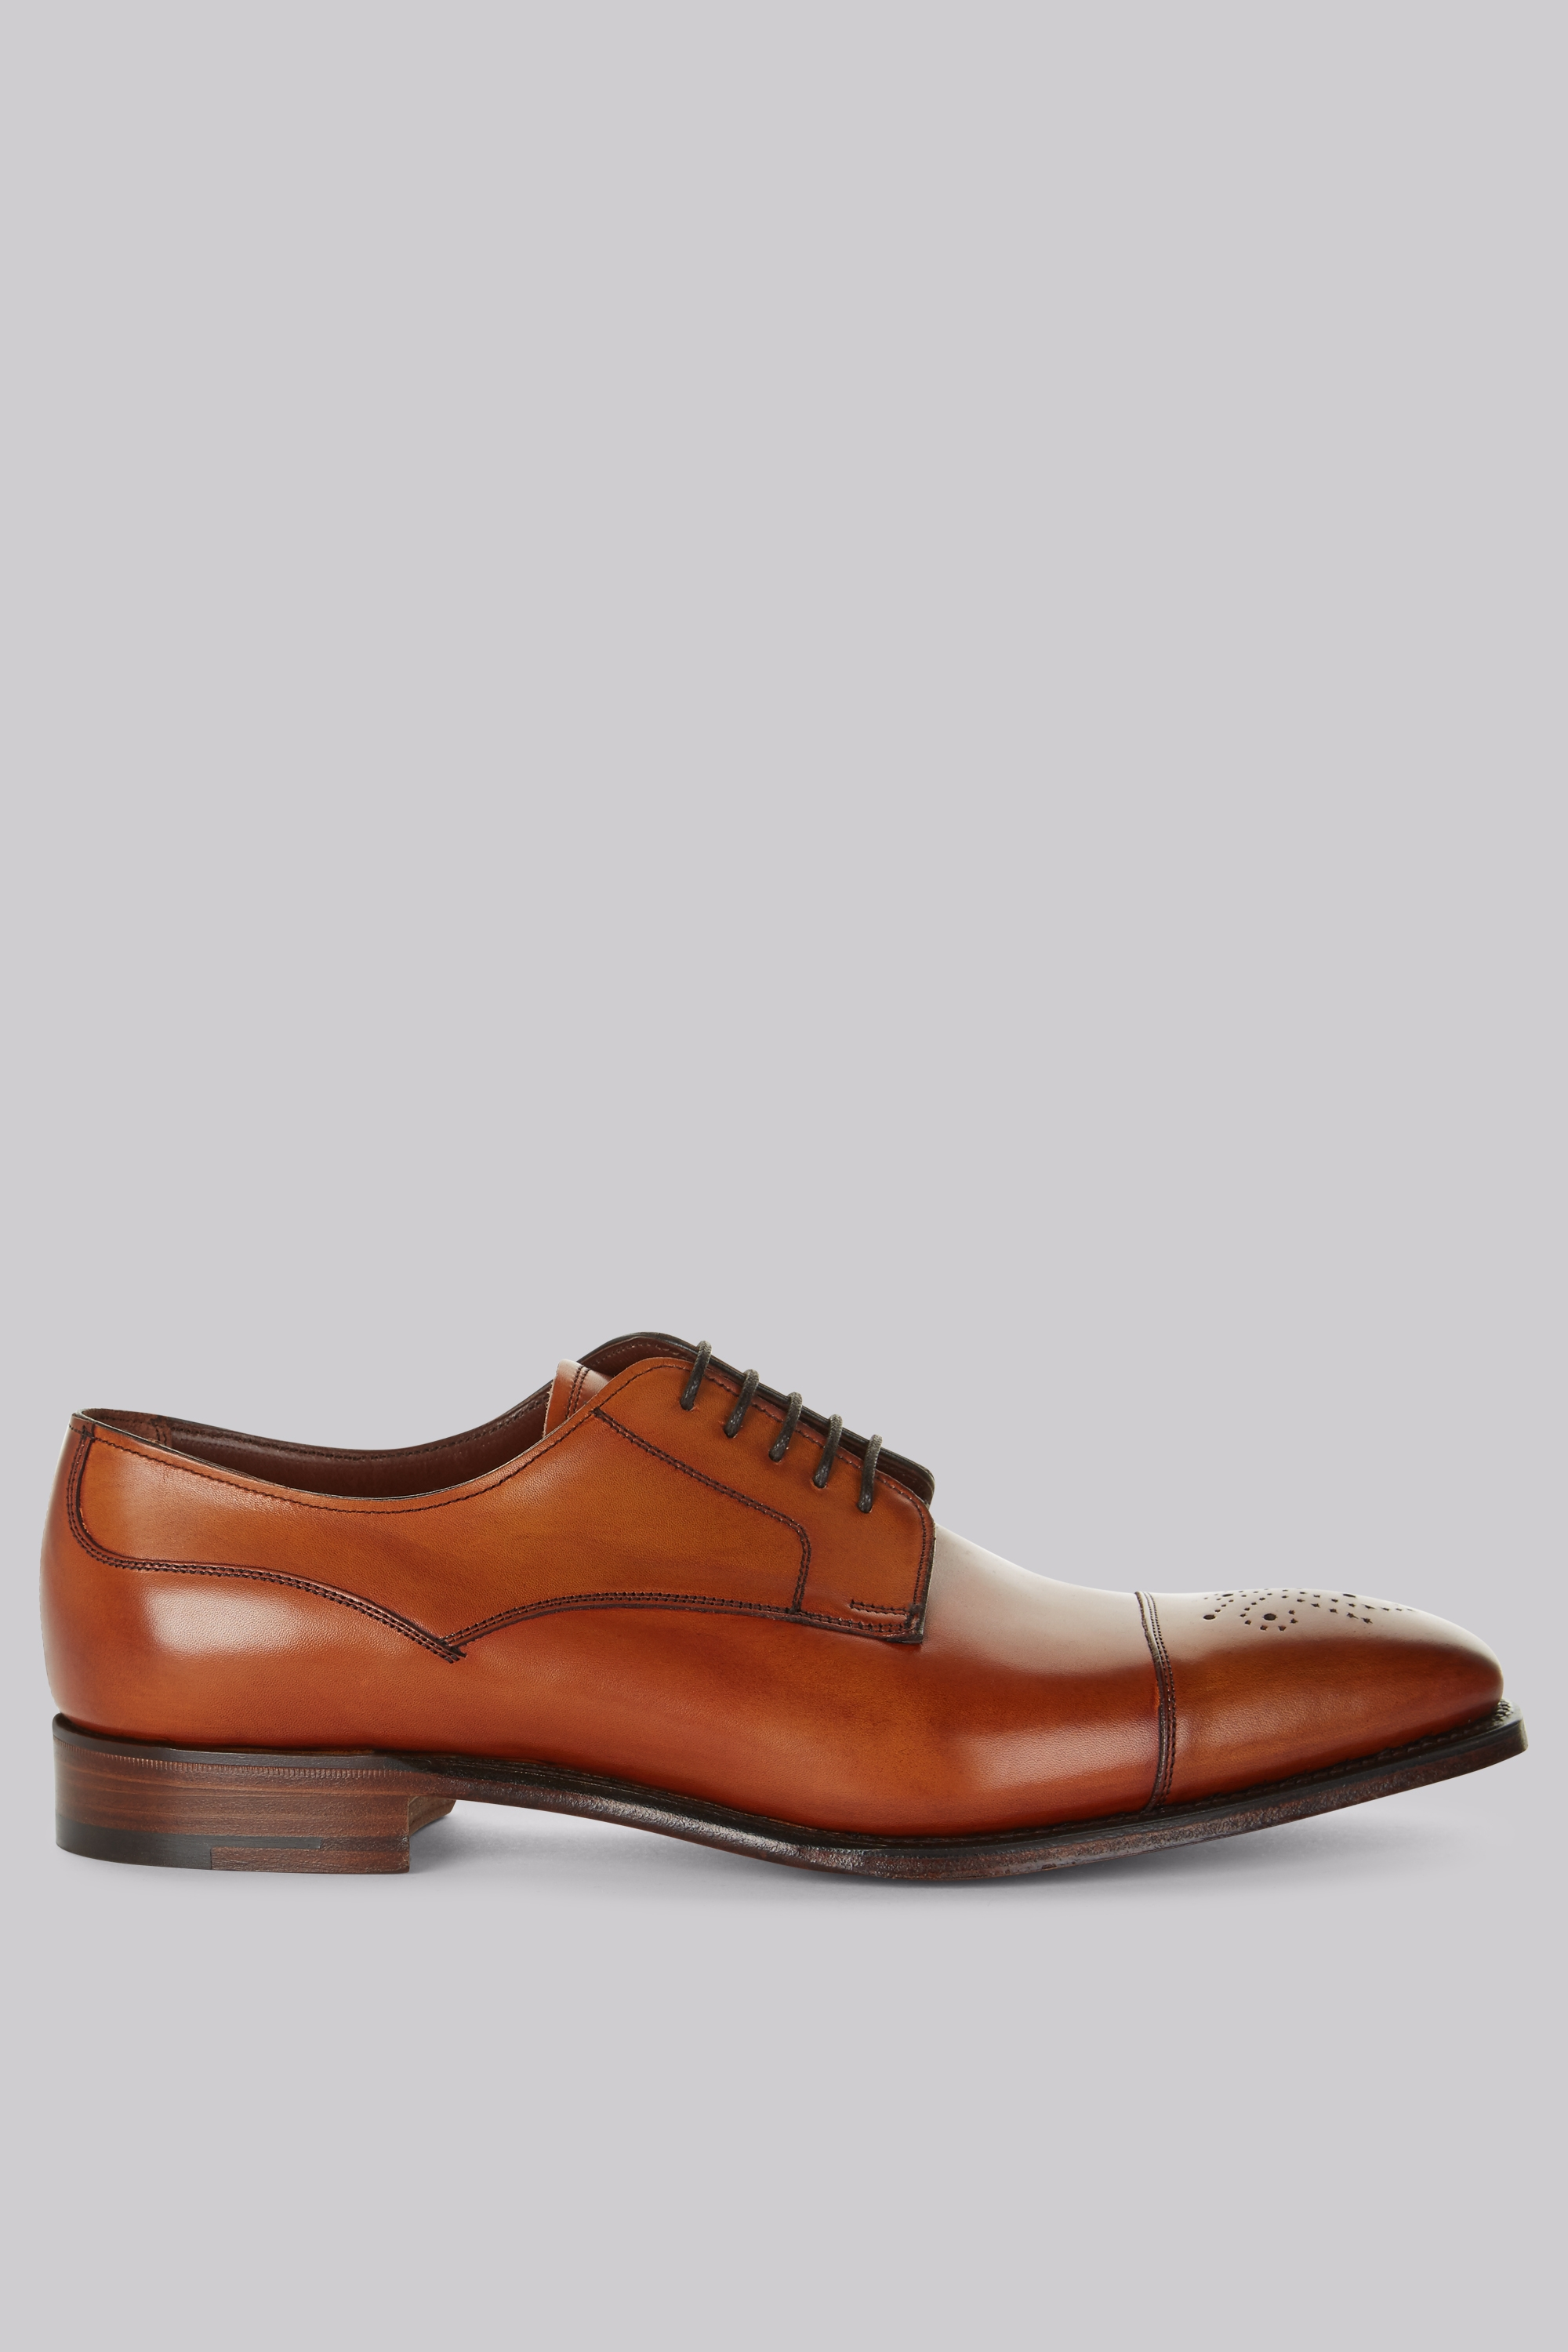 Moss Bros Cheaney Shoes Tan Punch Toe Derby Shoes